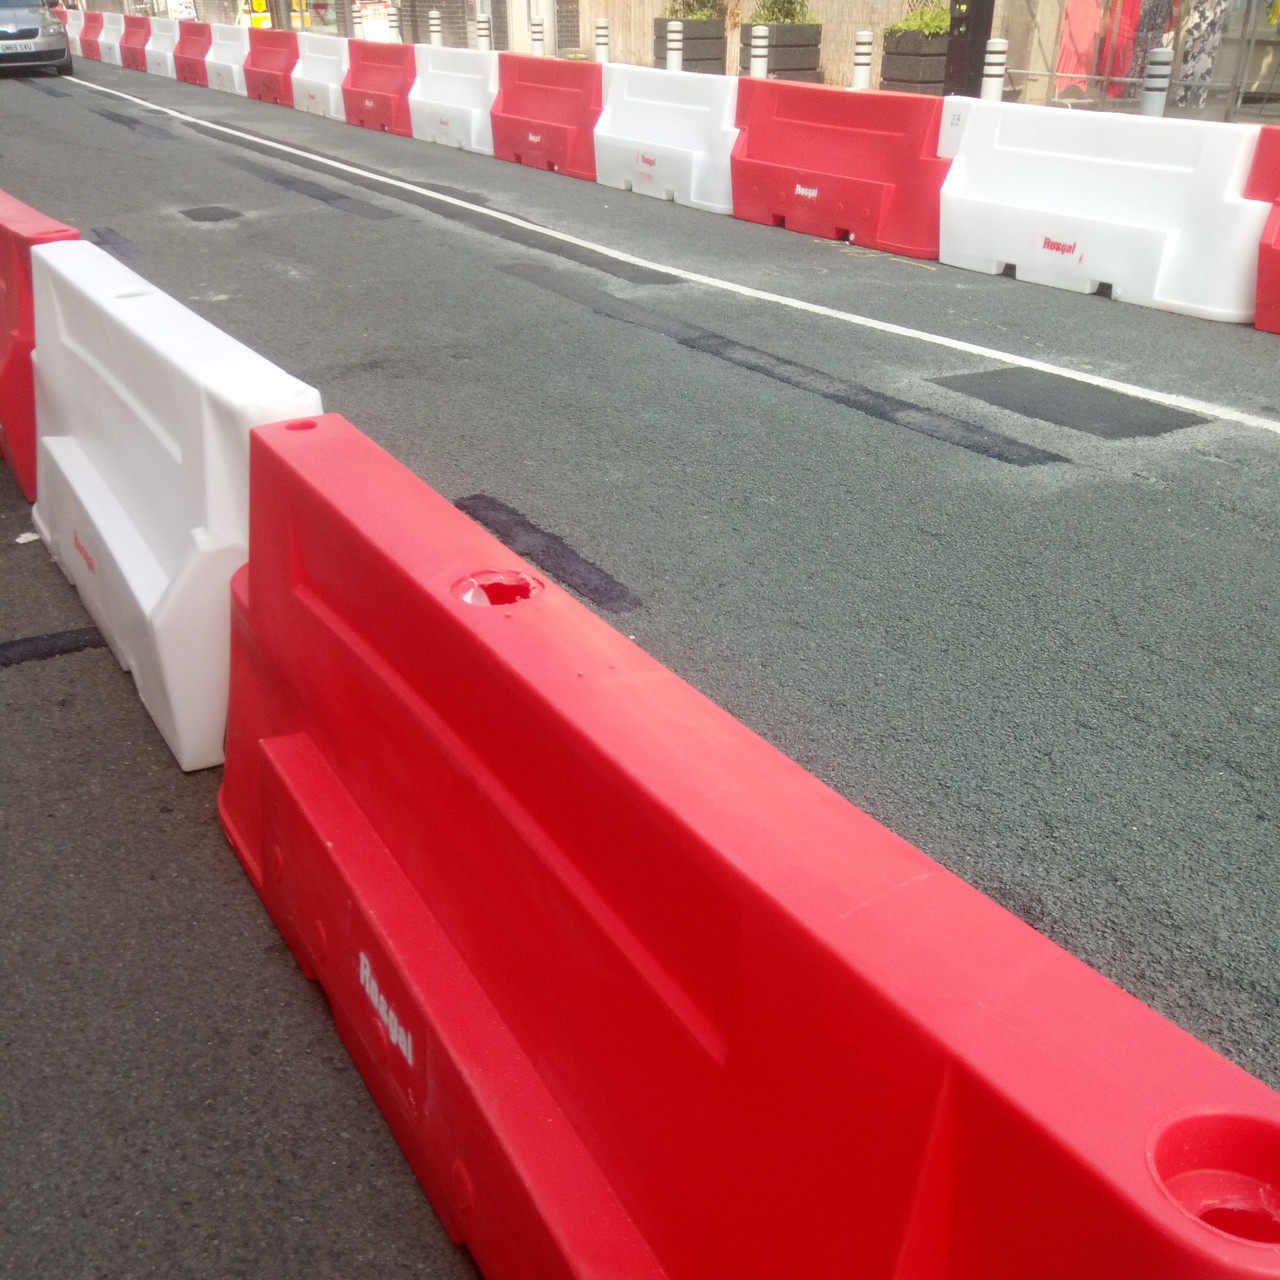 Novus 2 meter red and white water filled road barriers